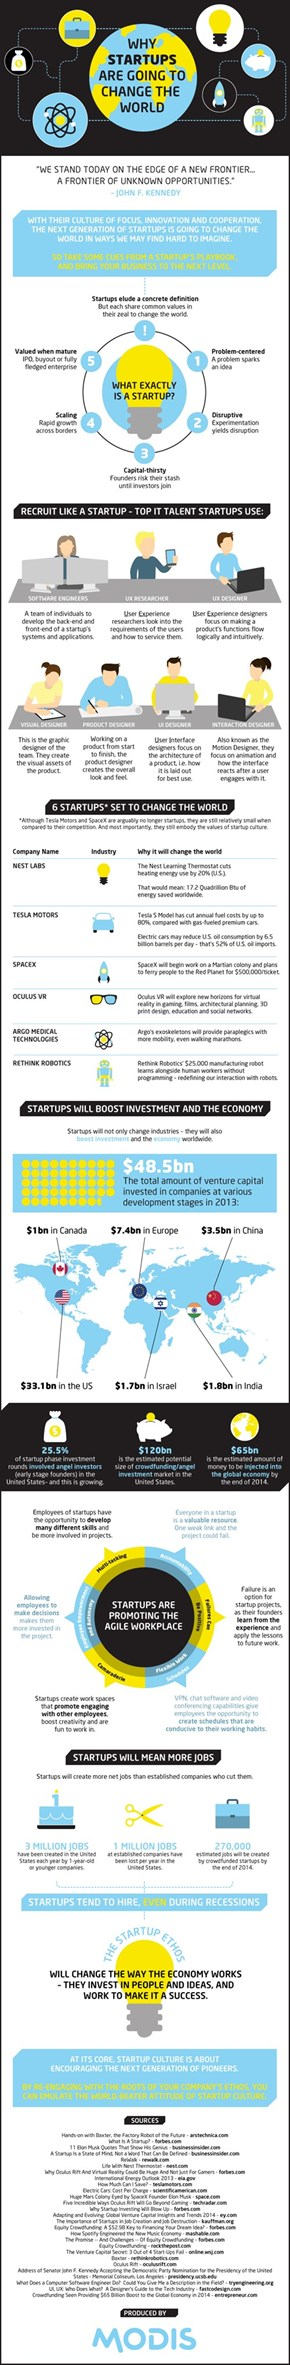 Why Startups Will Change The World